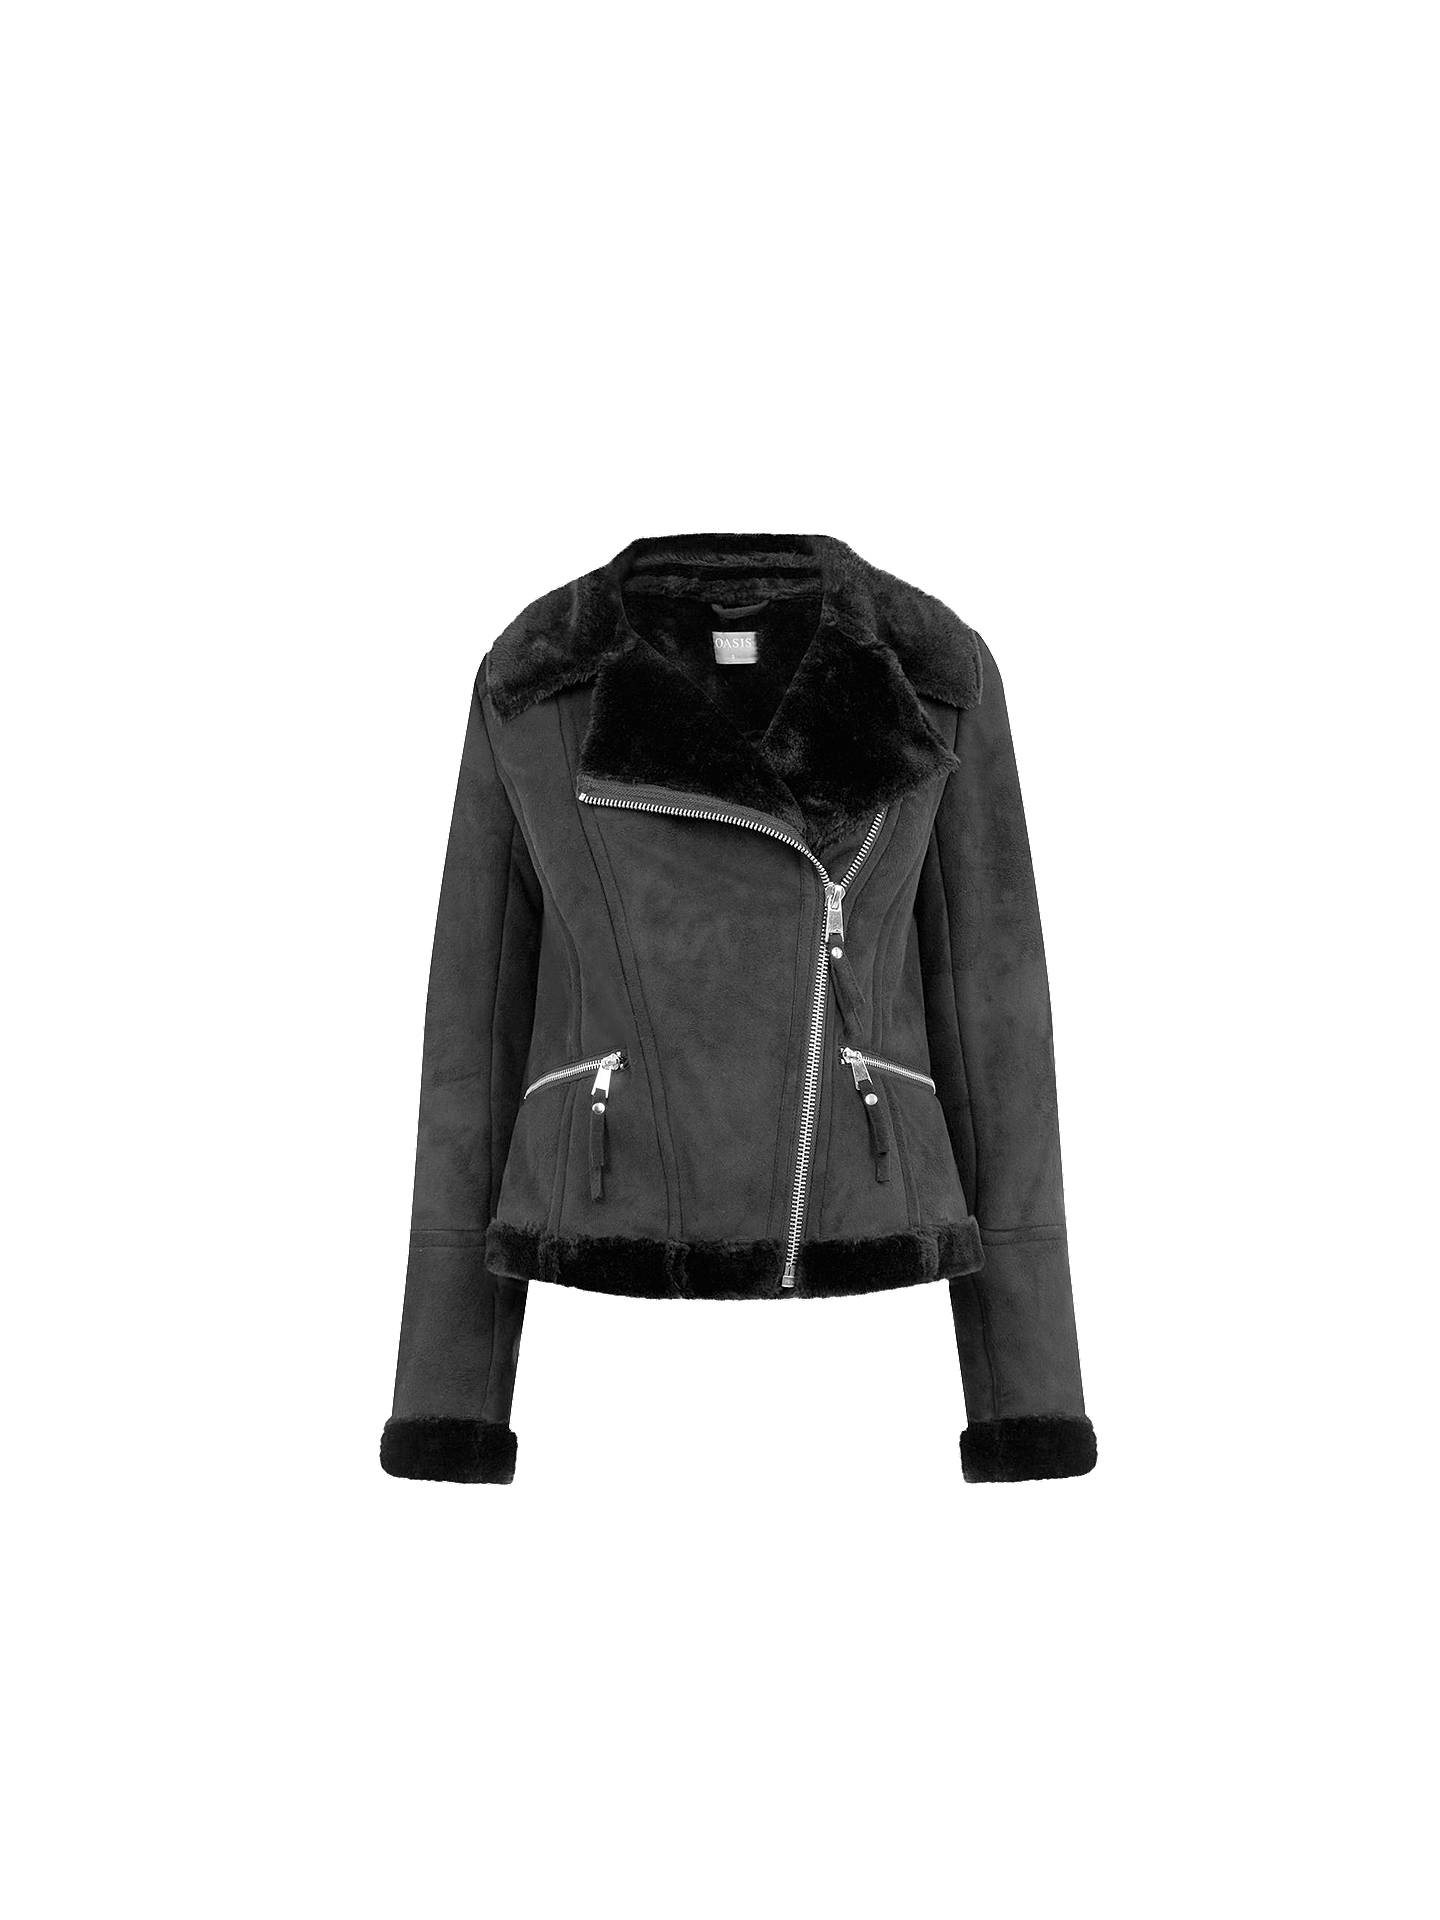 350eae500813 Buy Oasis Faux Shearling Jacket, Black, XS Online at johnlewis.com ...